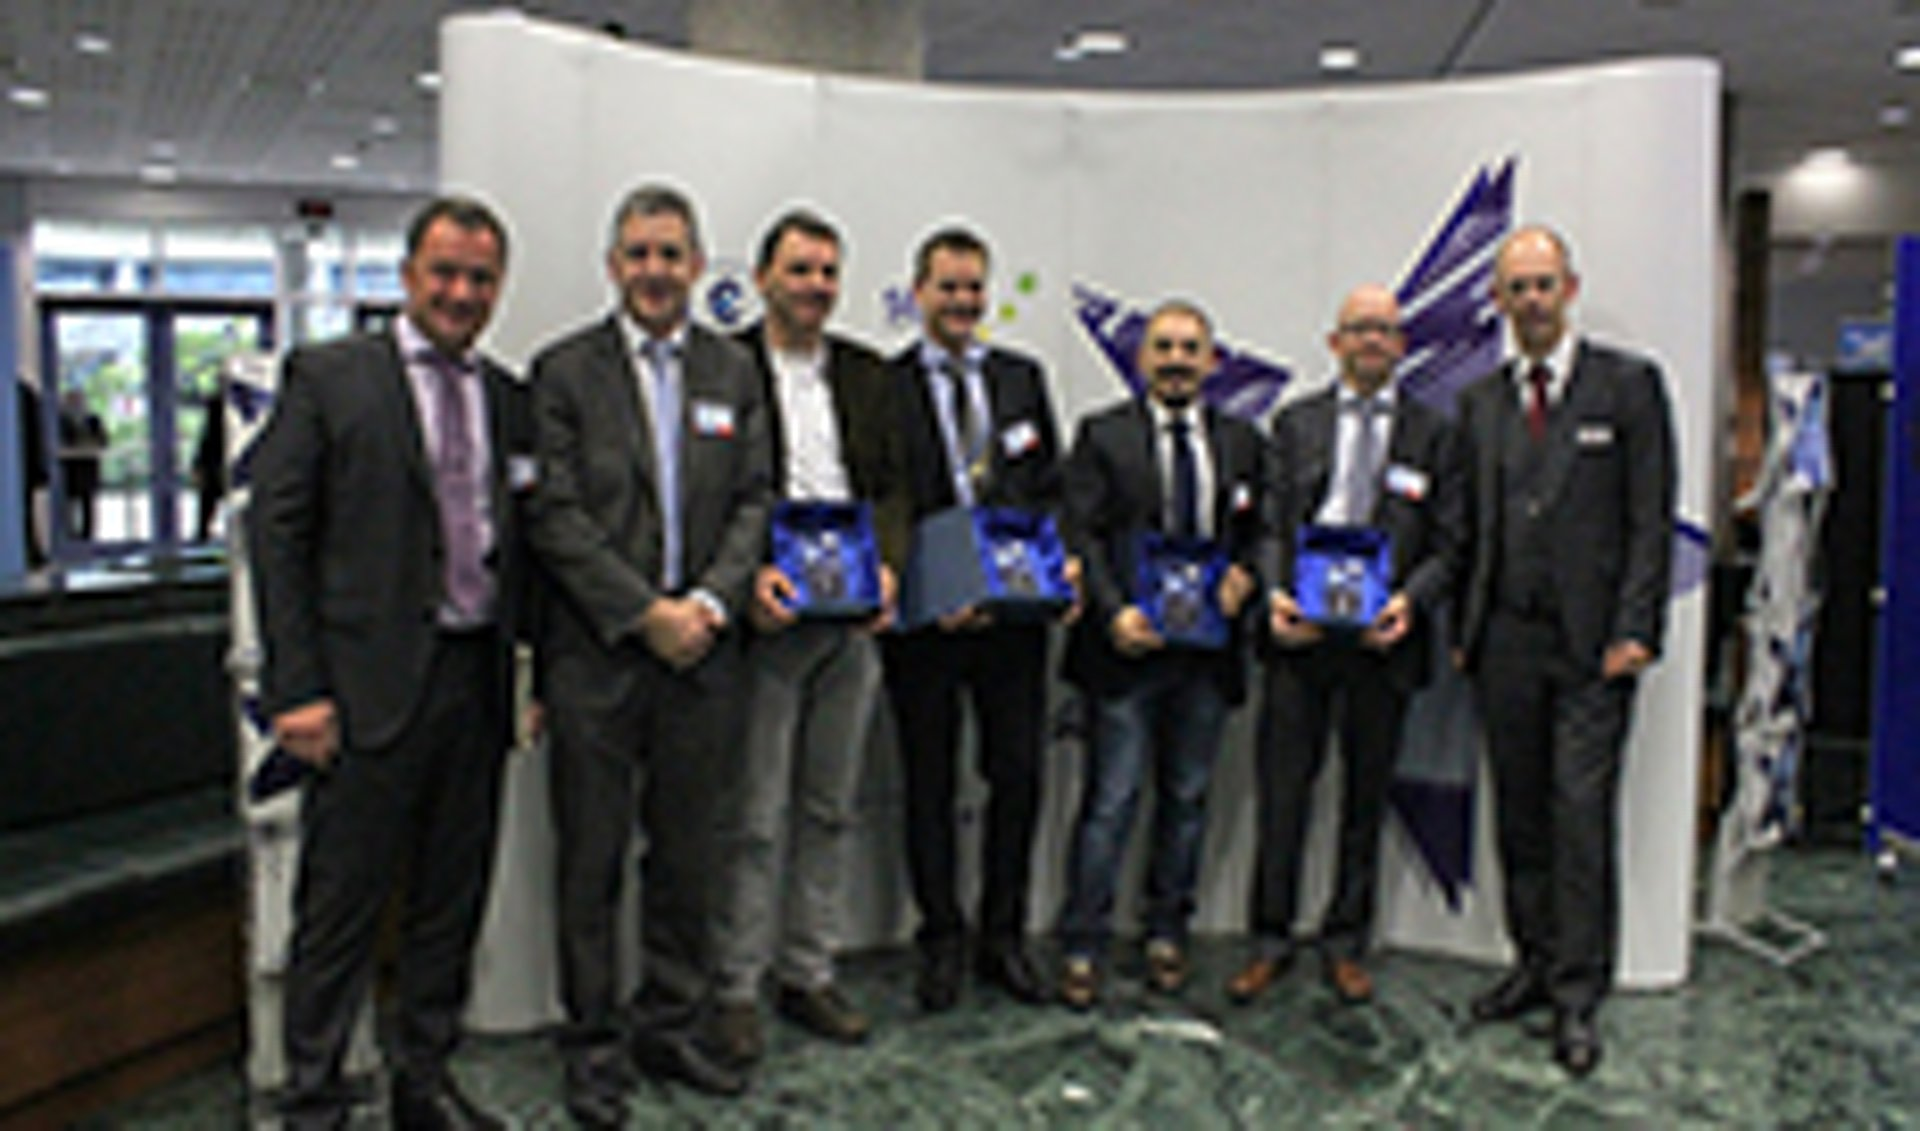 Airbus and Luciad awarded for best in class Air Traffic Management solution